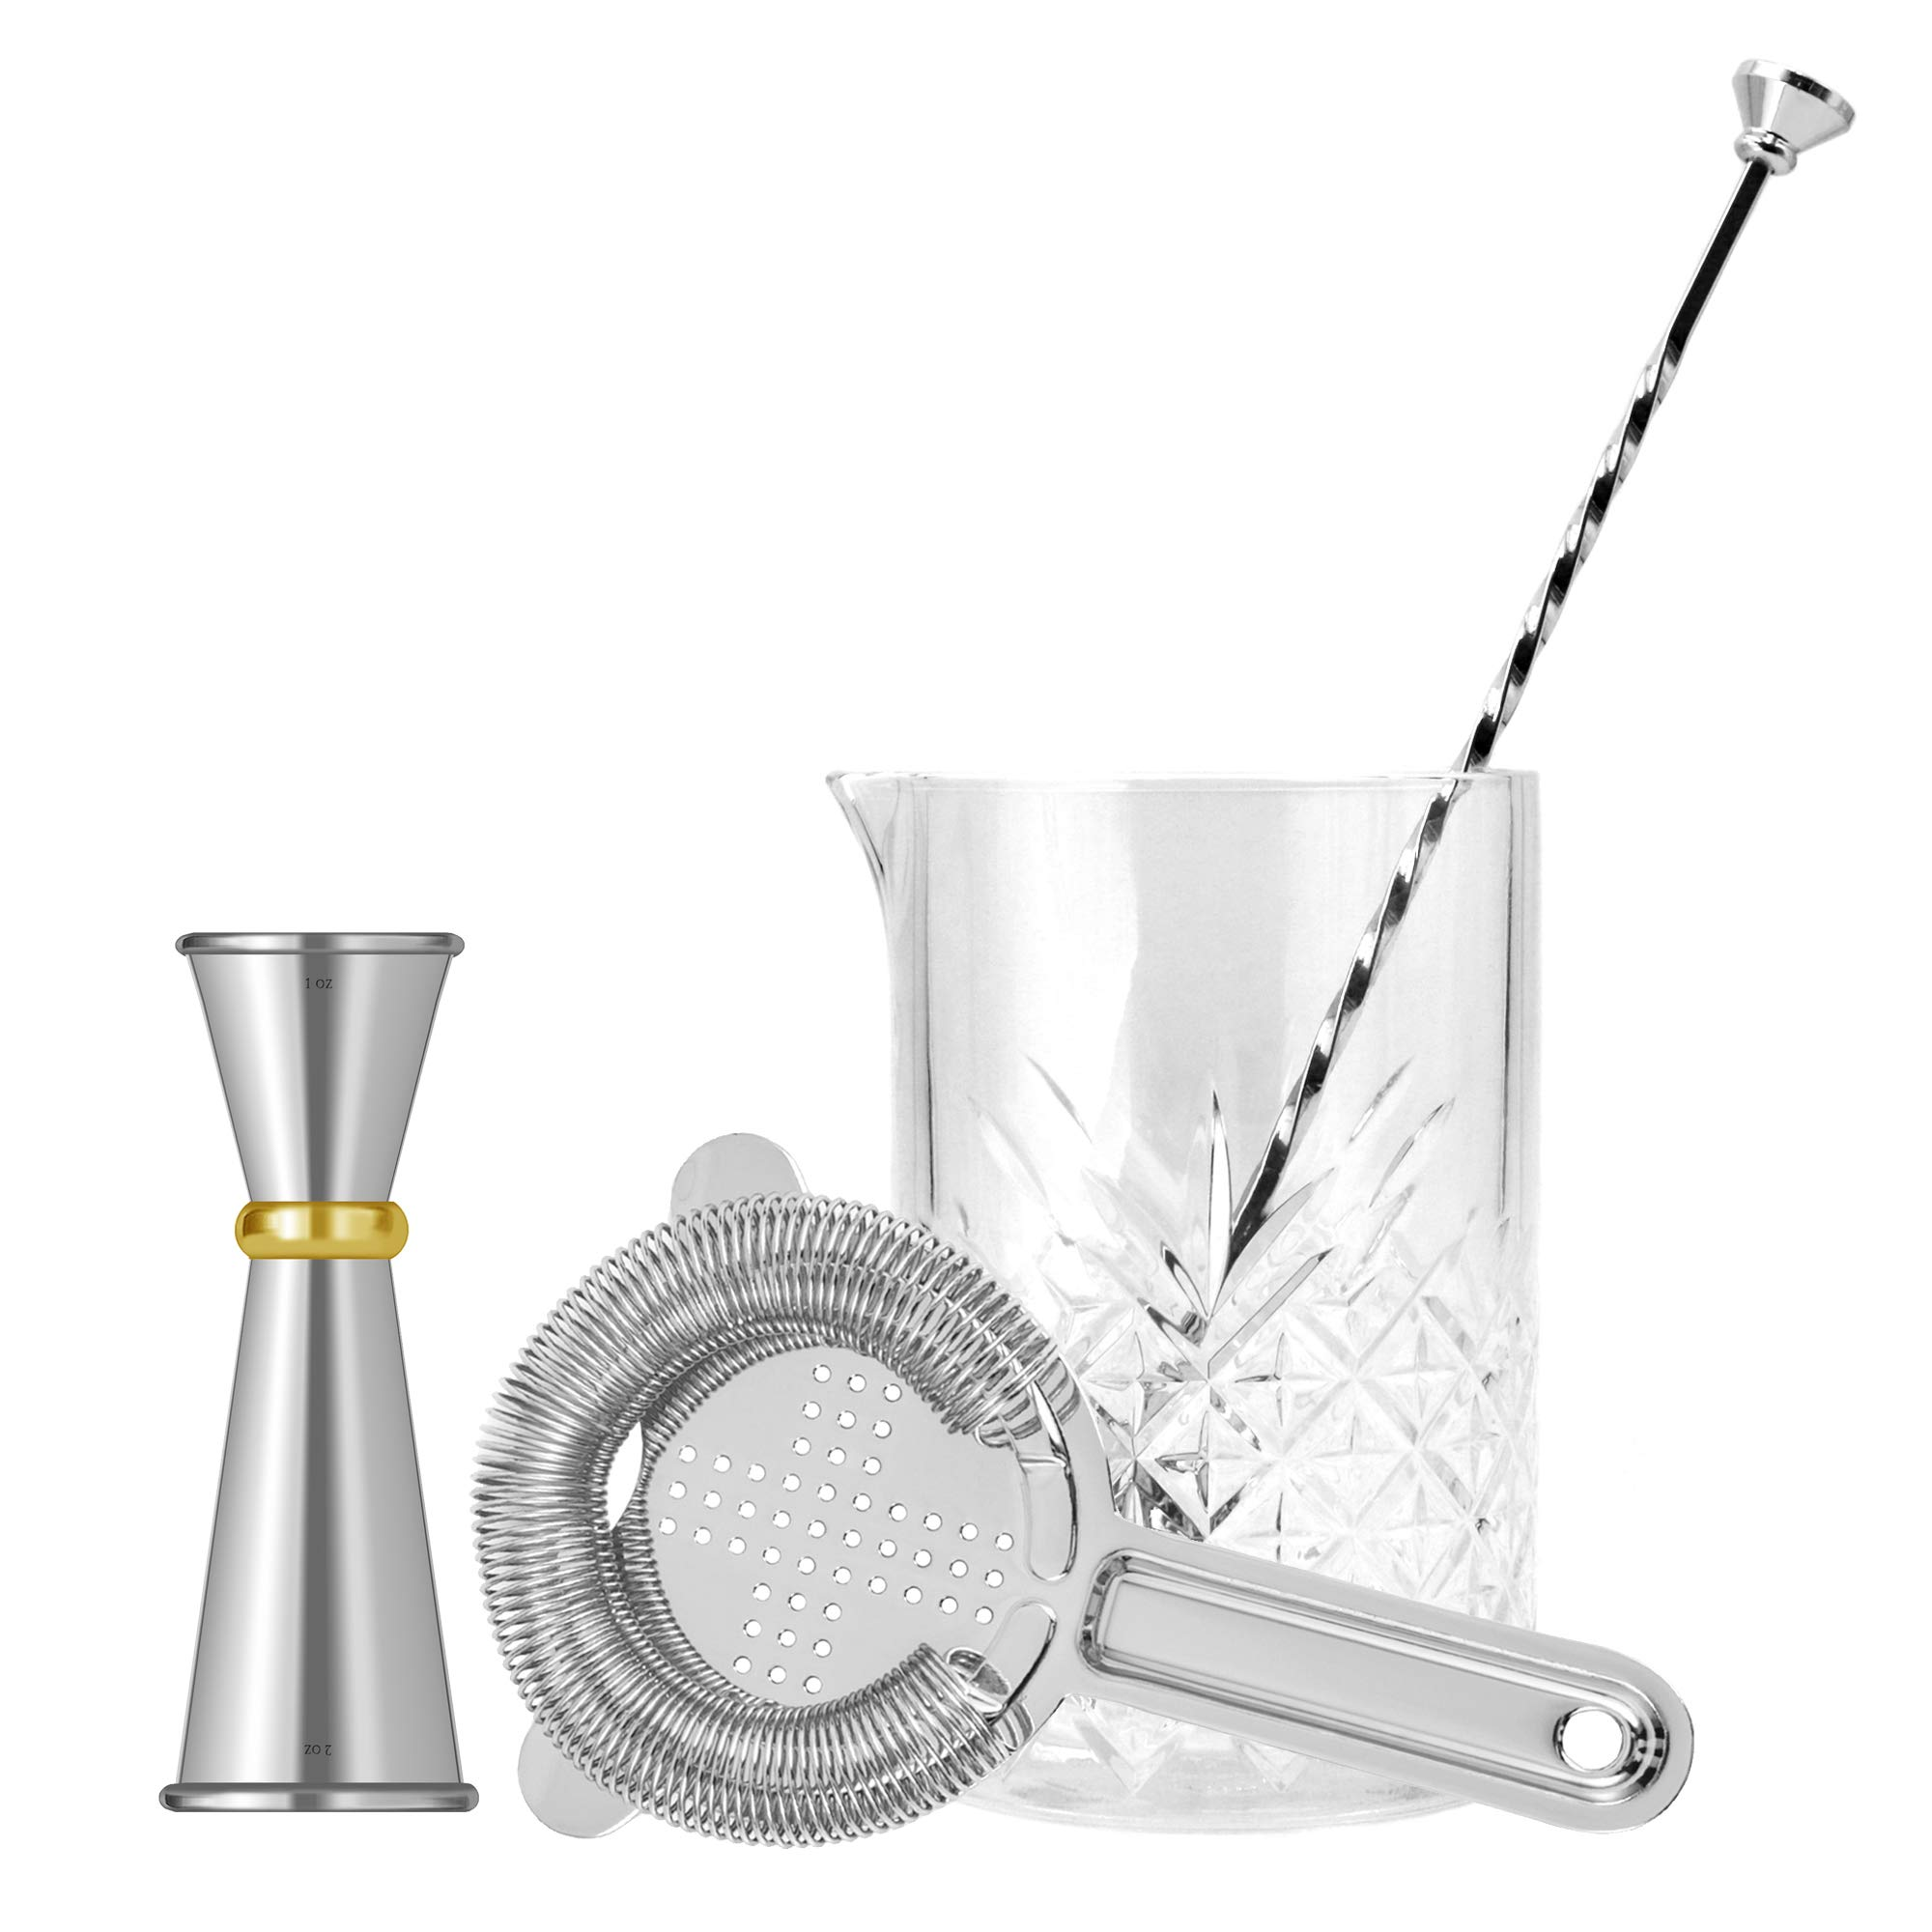 Cocktail Mixing Glass Bar Set By Homestia 4-Piece: 24.5oz Thick Mixing Glass, Hawthorne Cocktail Strainer, Double Jigger, Bar Spoon,Silver Bar Set Father's Day Gift Set